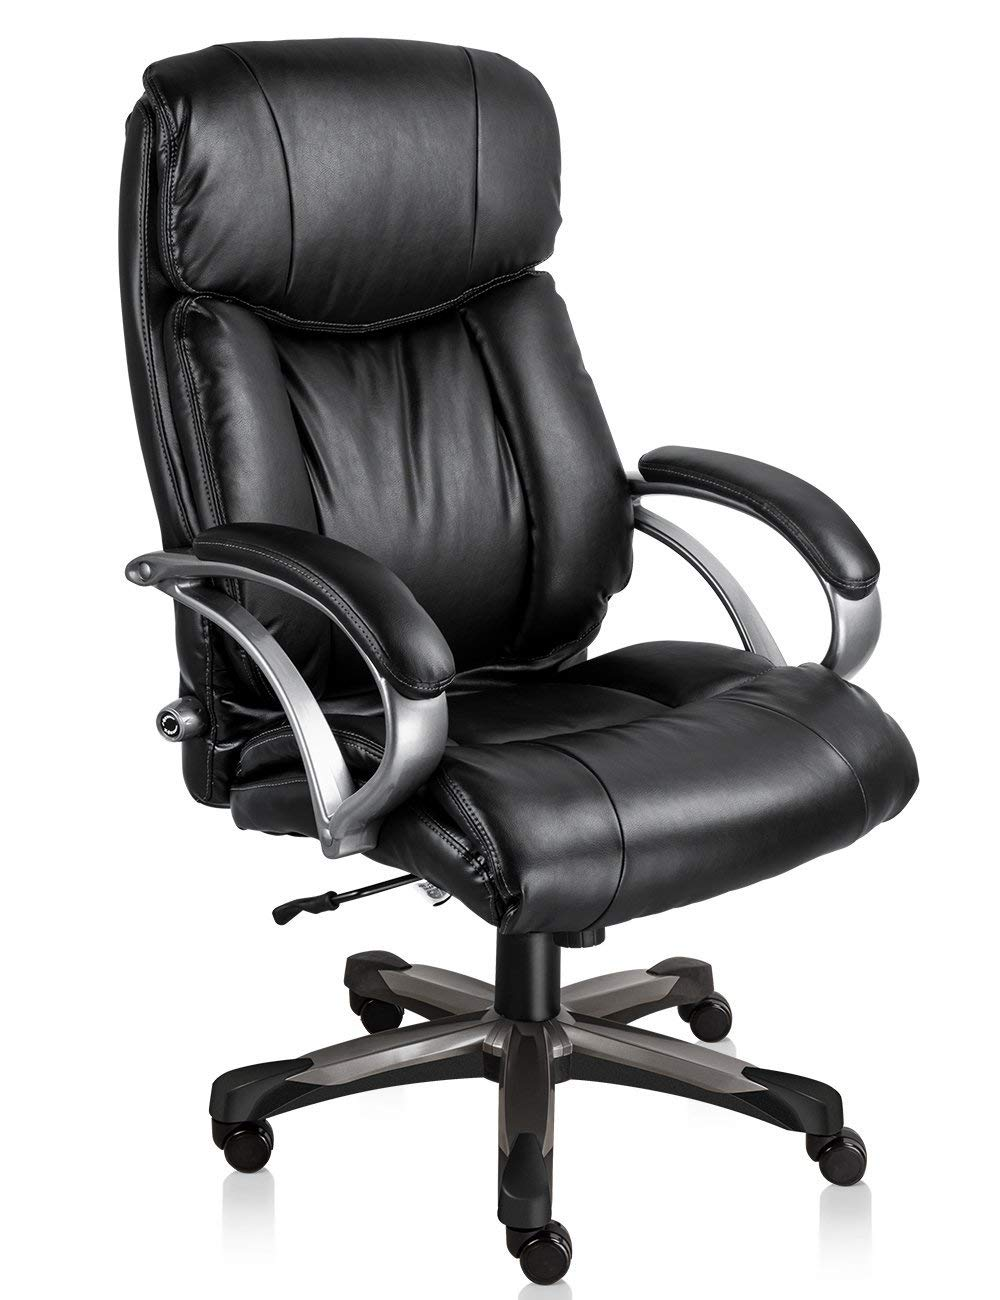 MDL Furniture High Back Executive Office Chair Ergonomic Big and Tall Desk Office Chair with Comfortable Lumbar Support Heavy Duty Home Office Chair(Black)